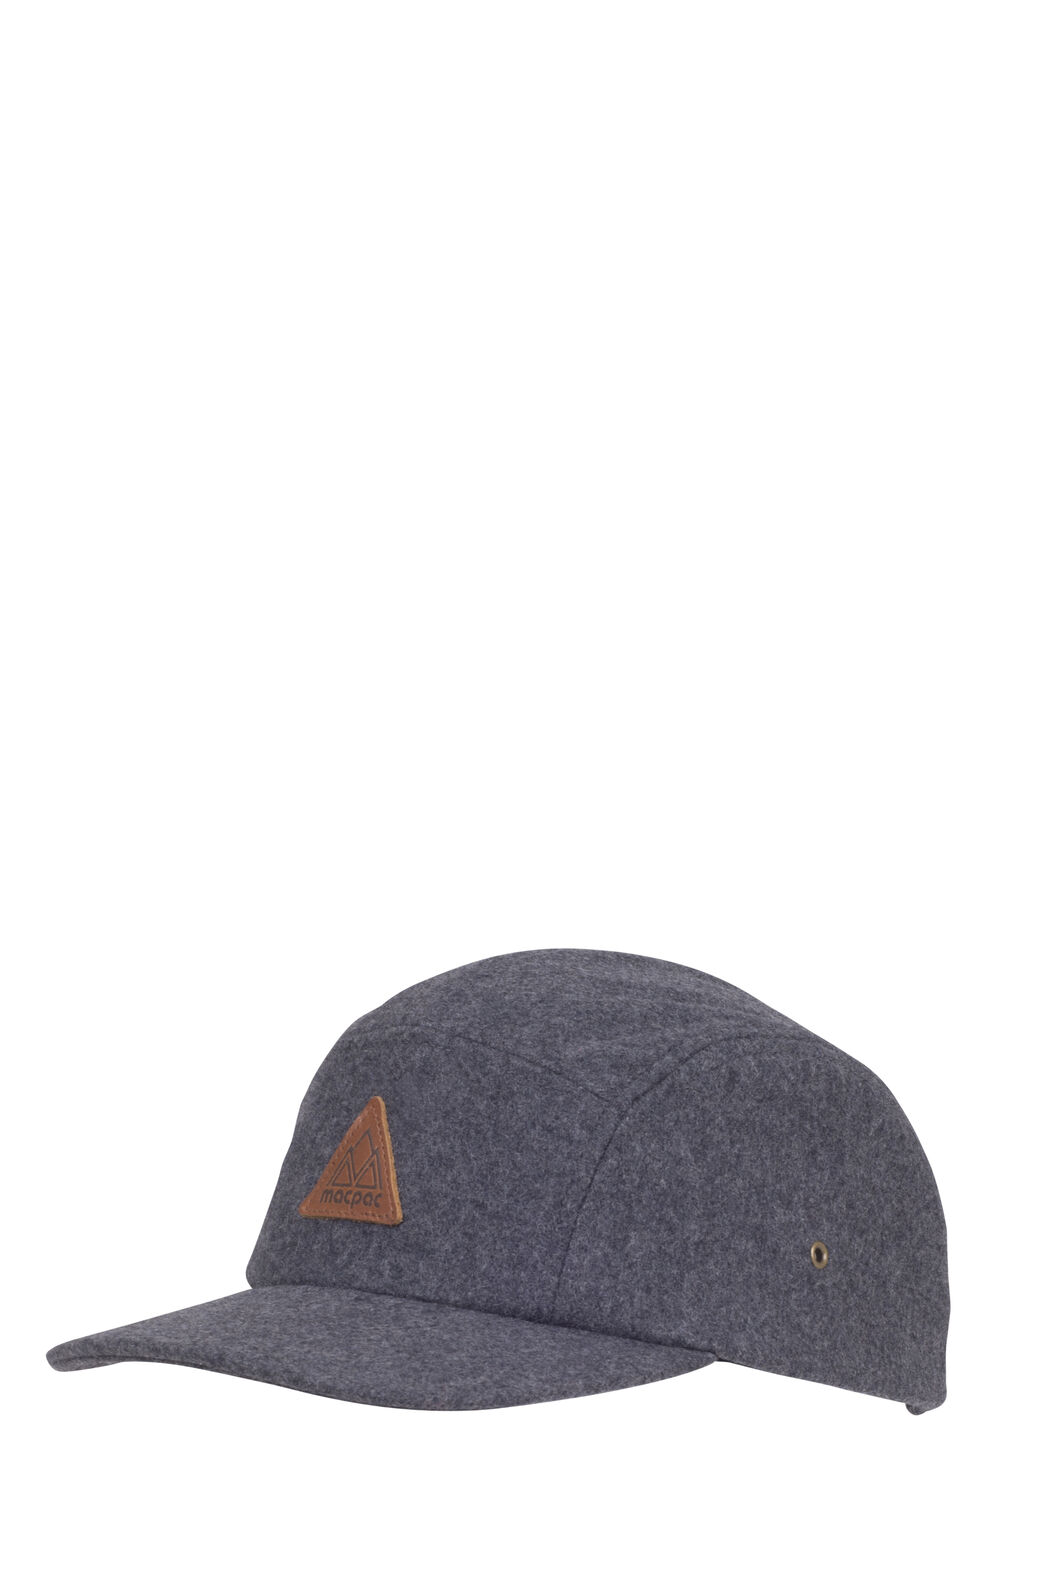 Macpac Wool Blend 5-Panel Hat, Grey, hi-res